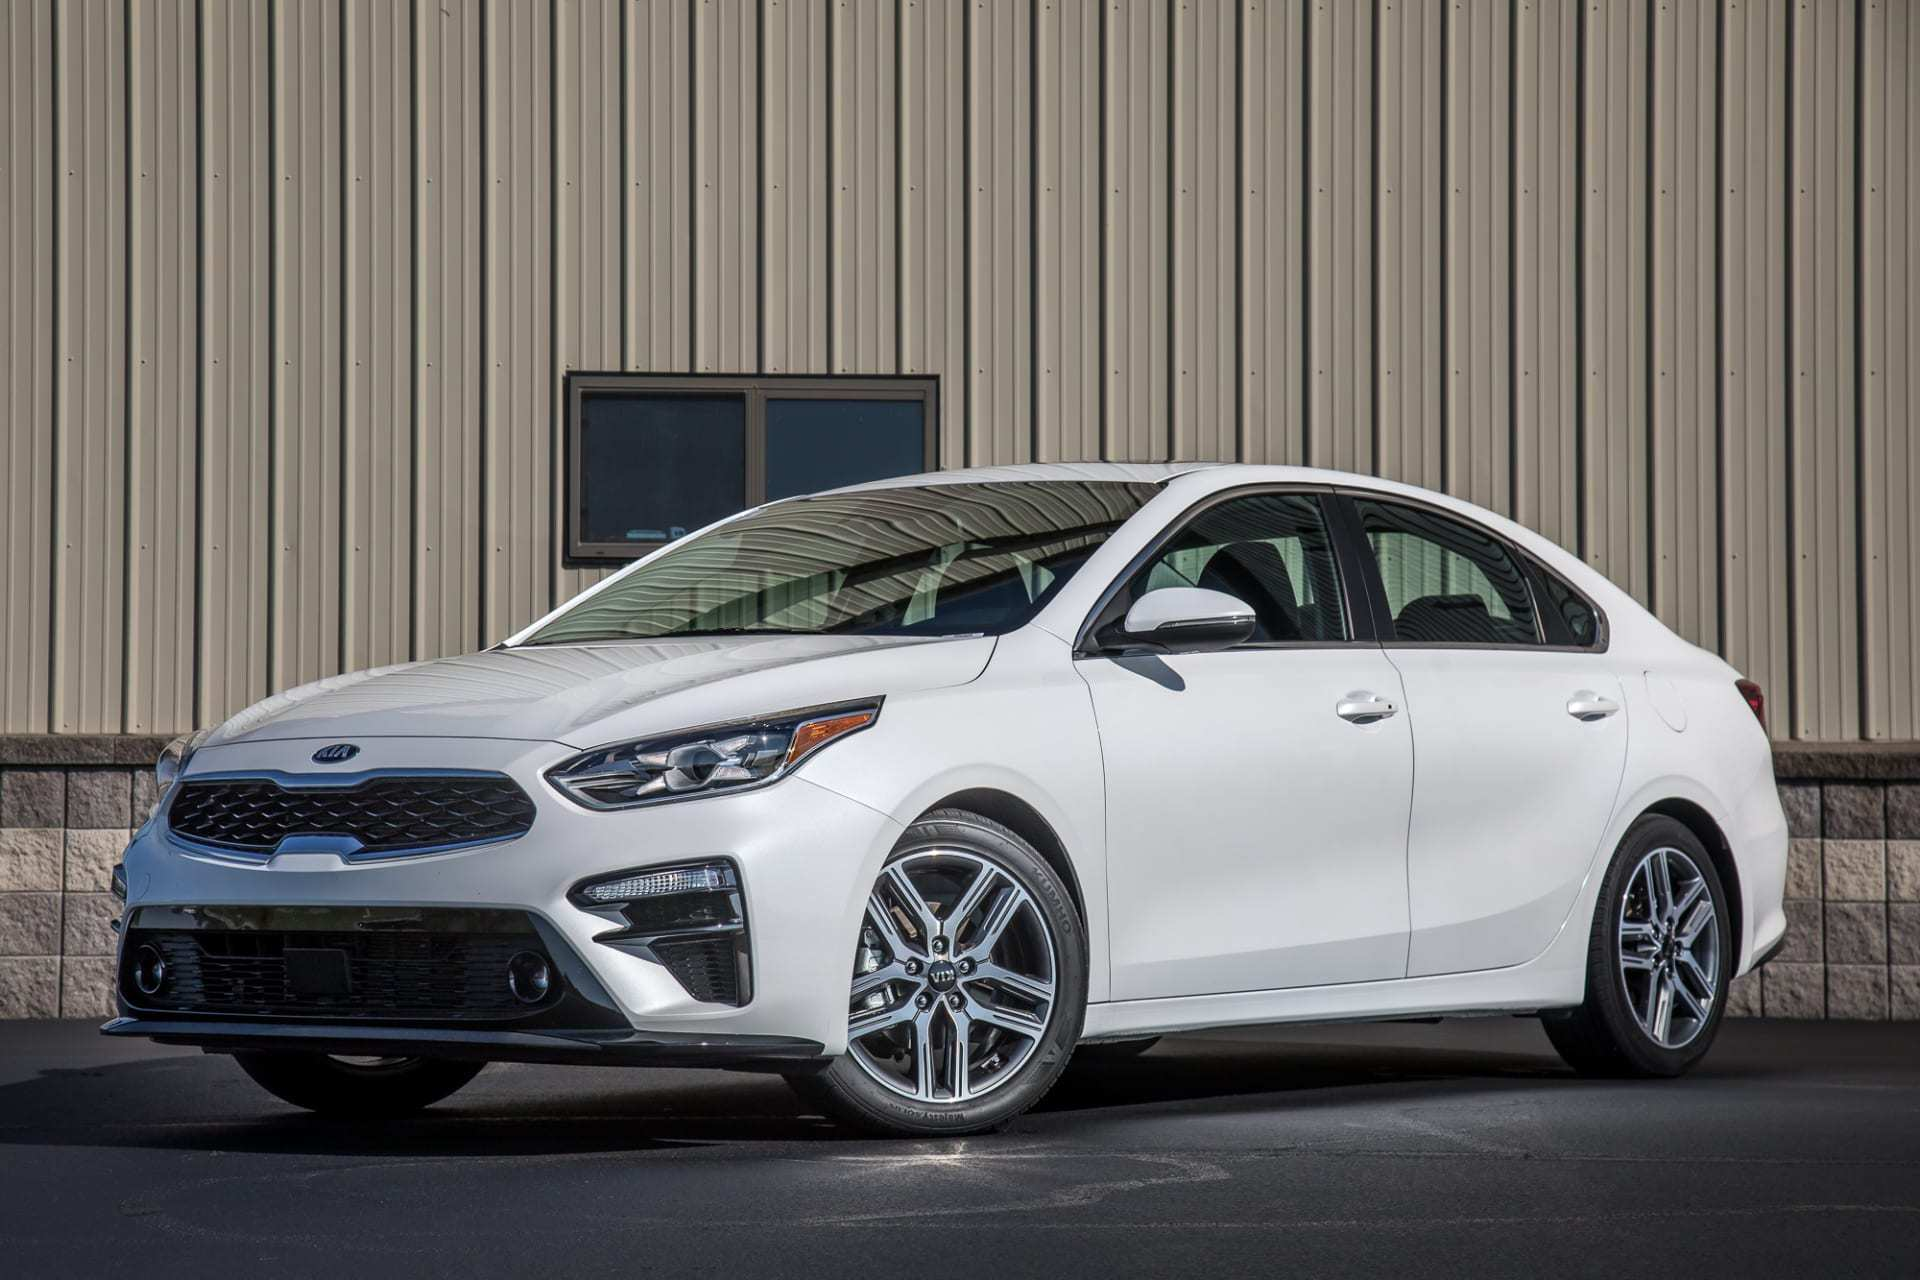 41 All New 2019 Kia Forte Horsepower History